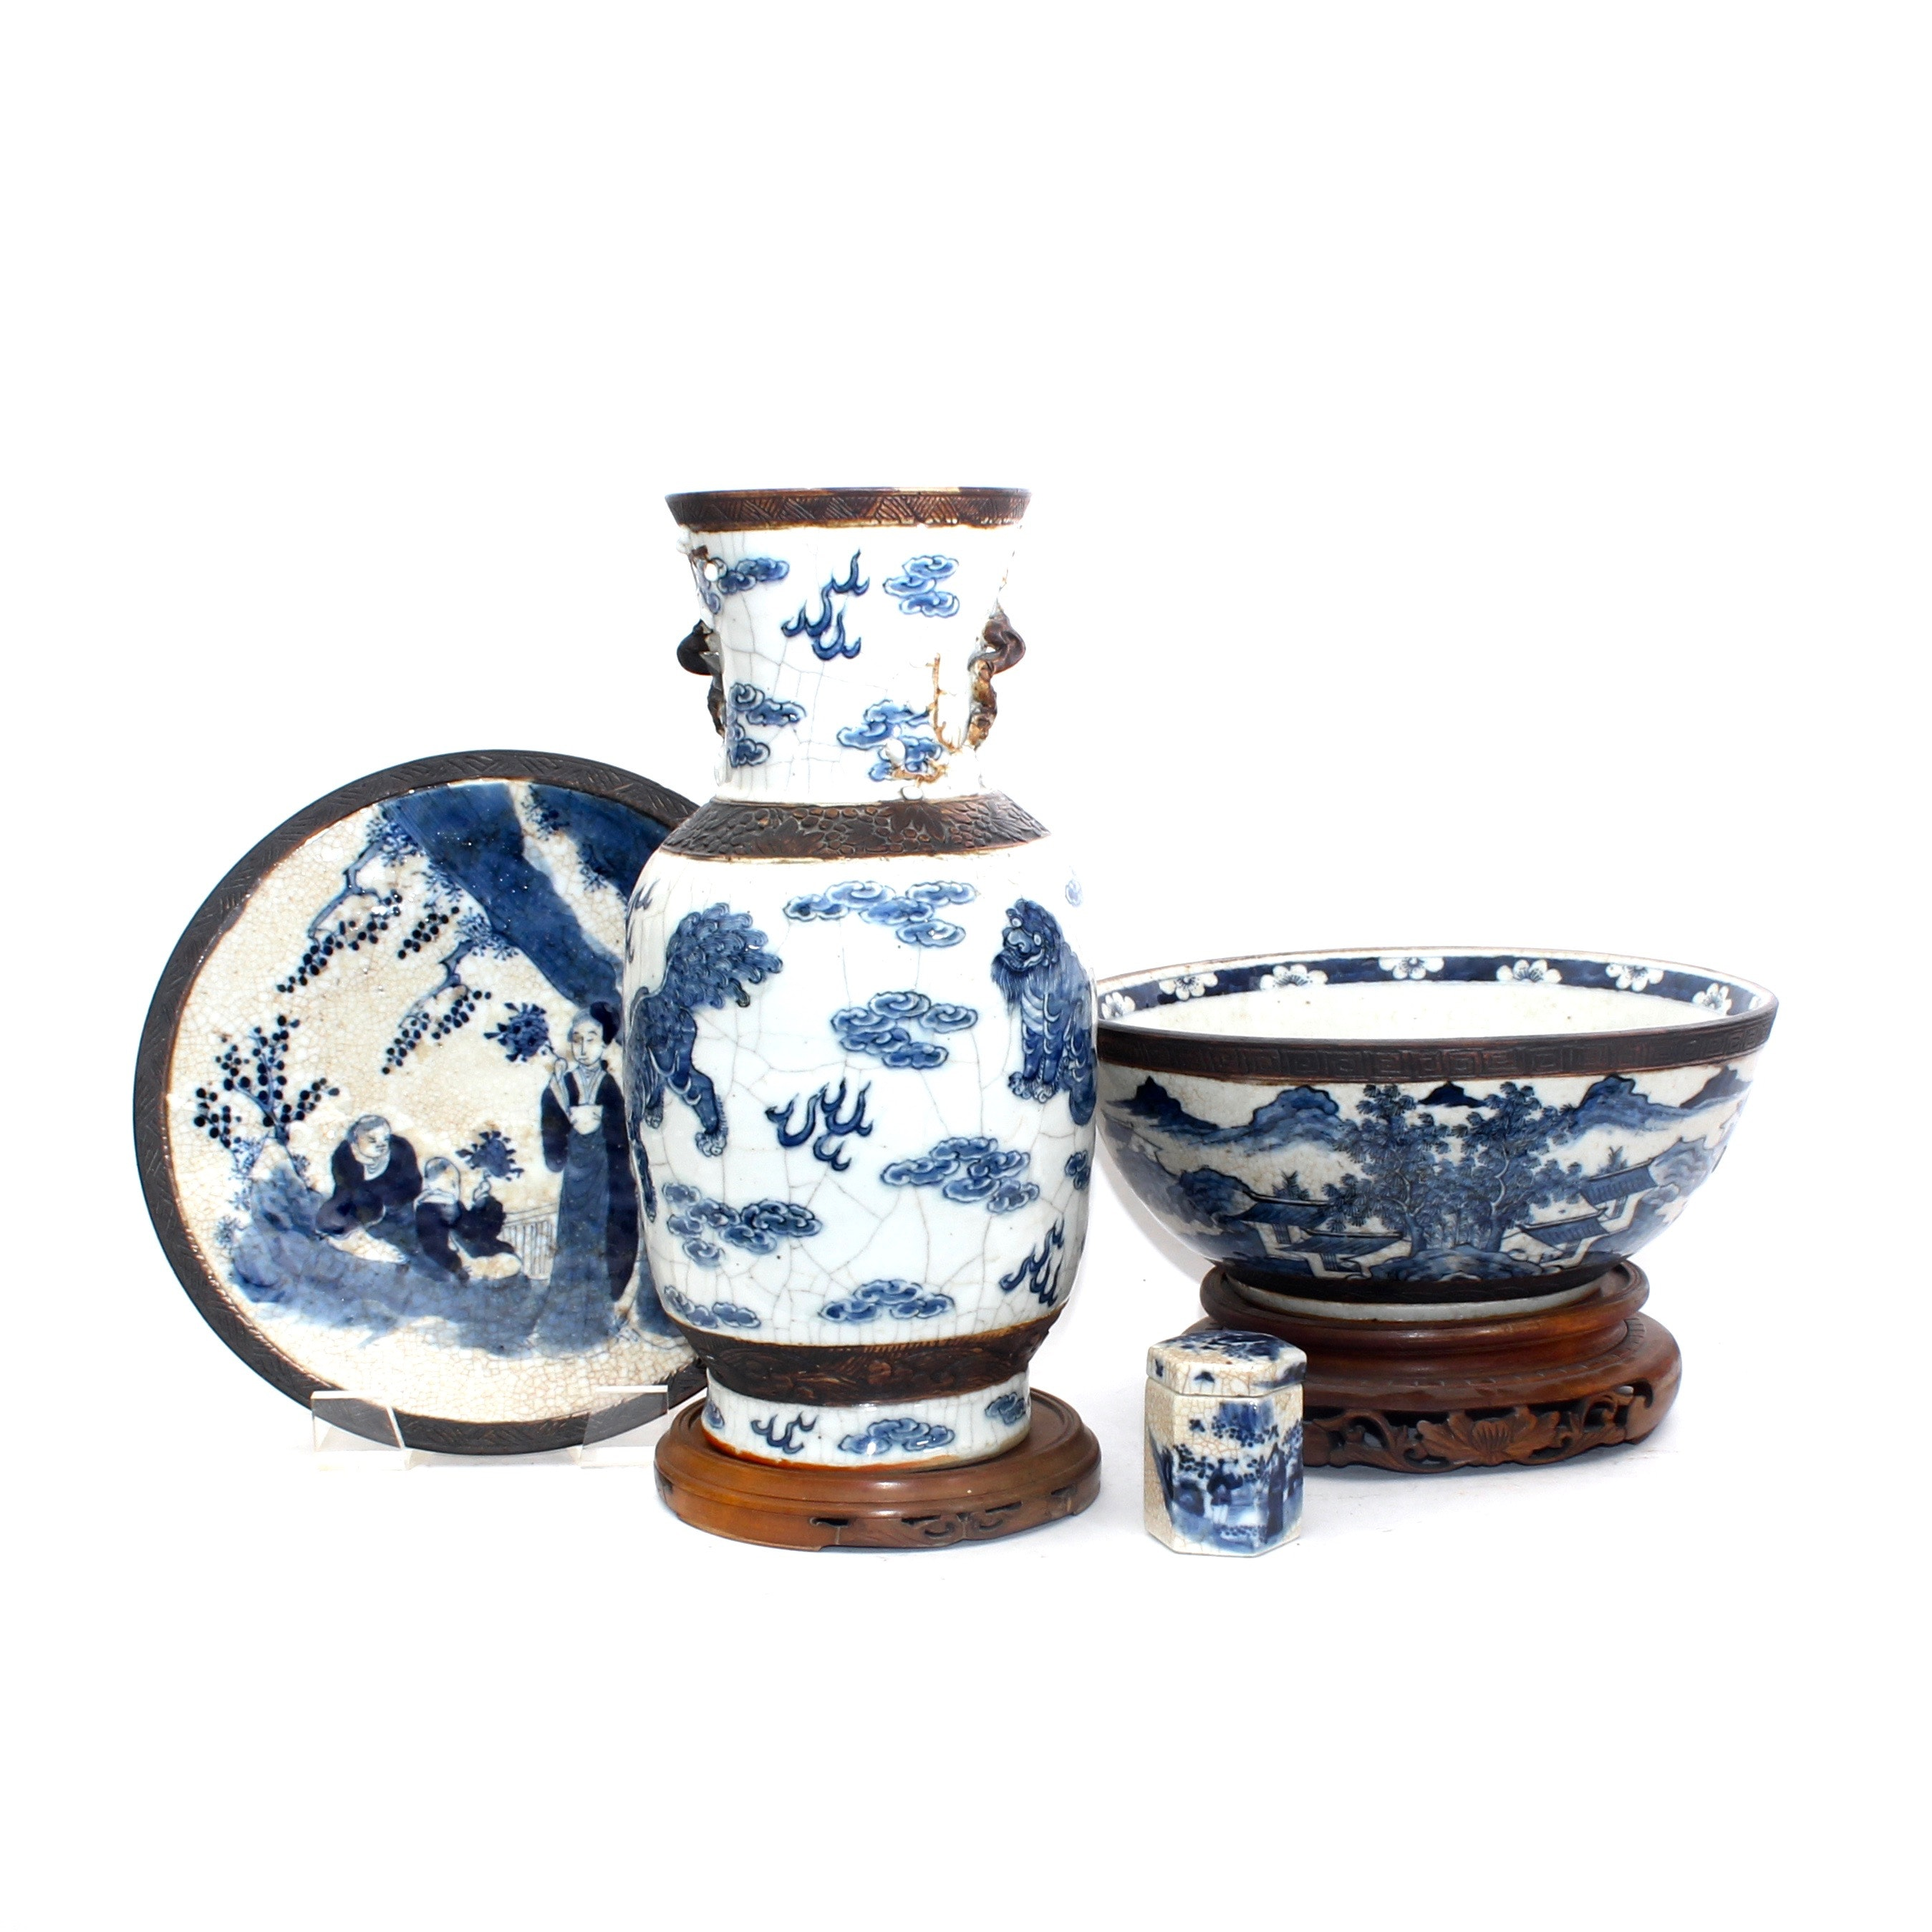 Chinese Blue and White Import Ceramics and Pottery